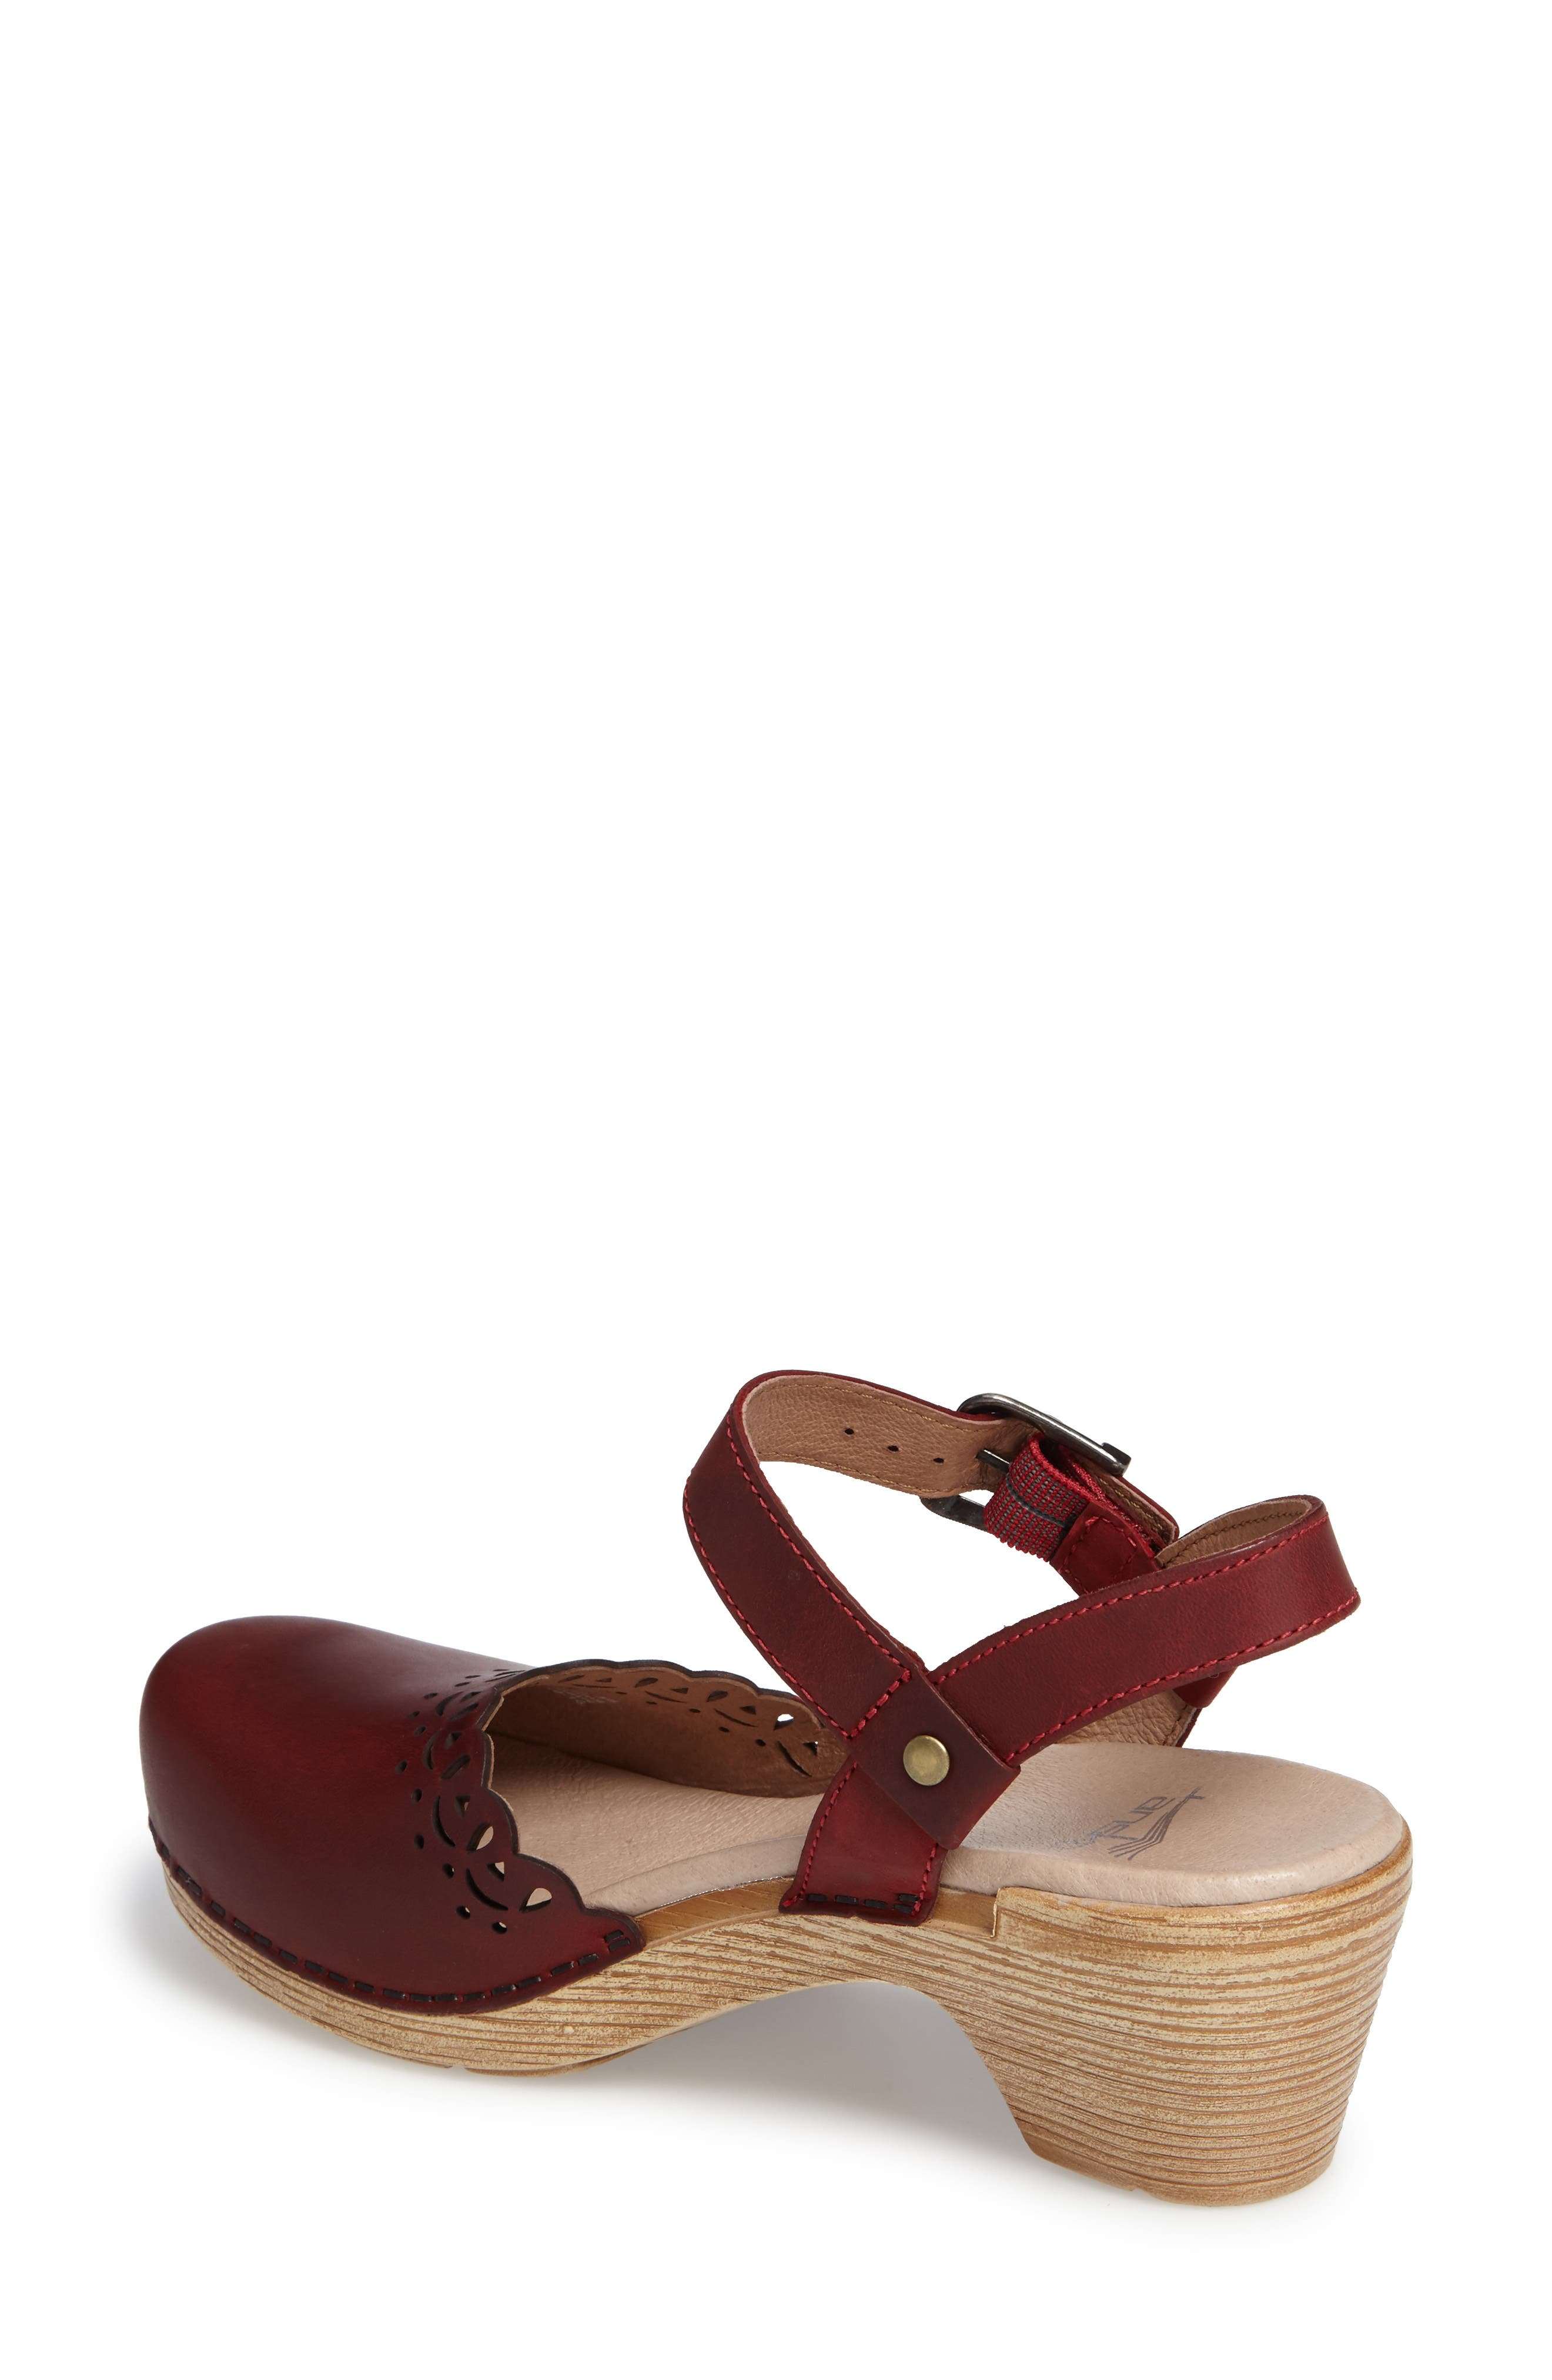 'Marta' Ankle Strap Clog,                             Alternate thumbnail 10, color,